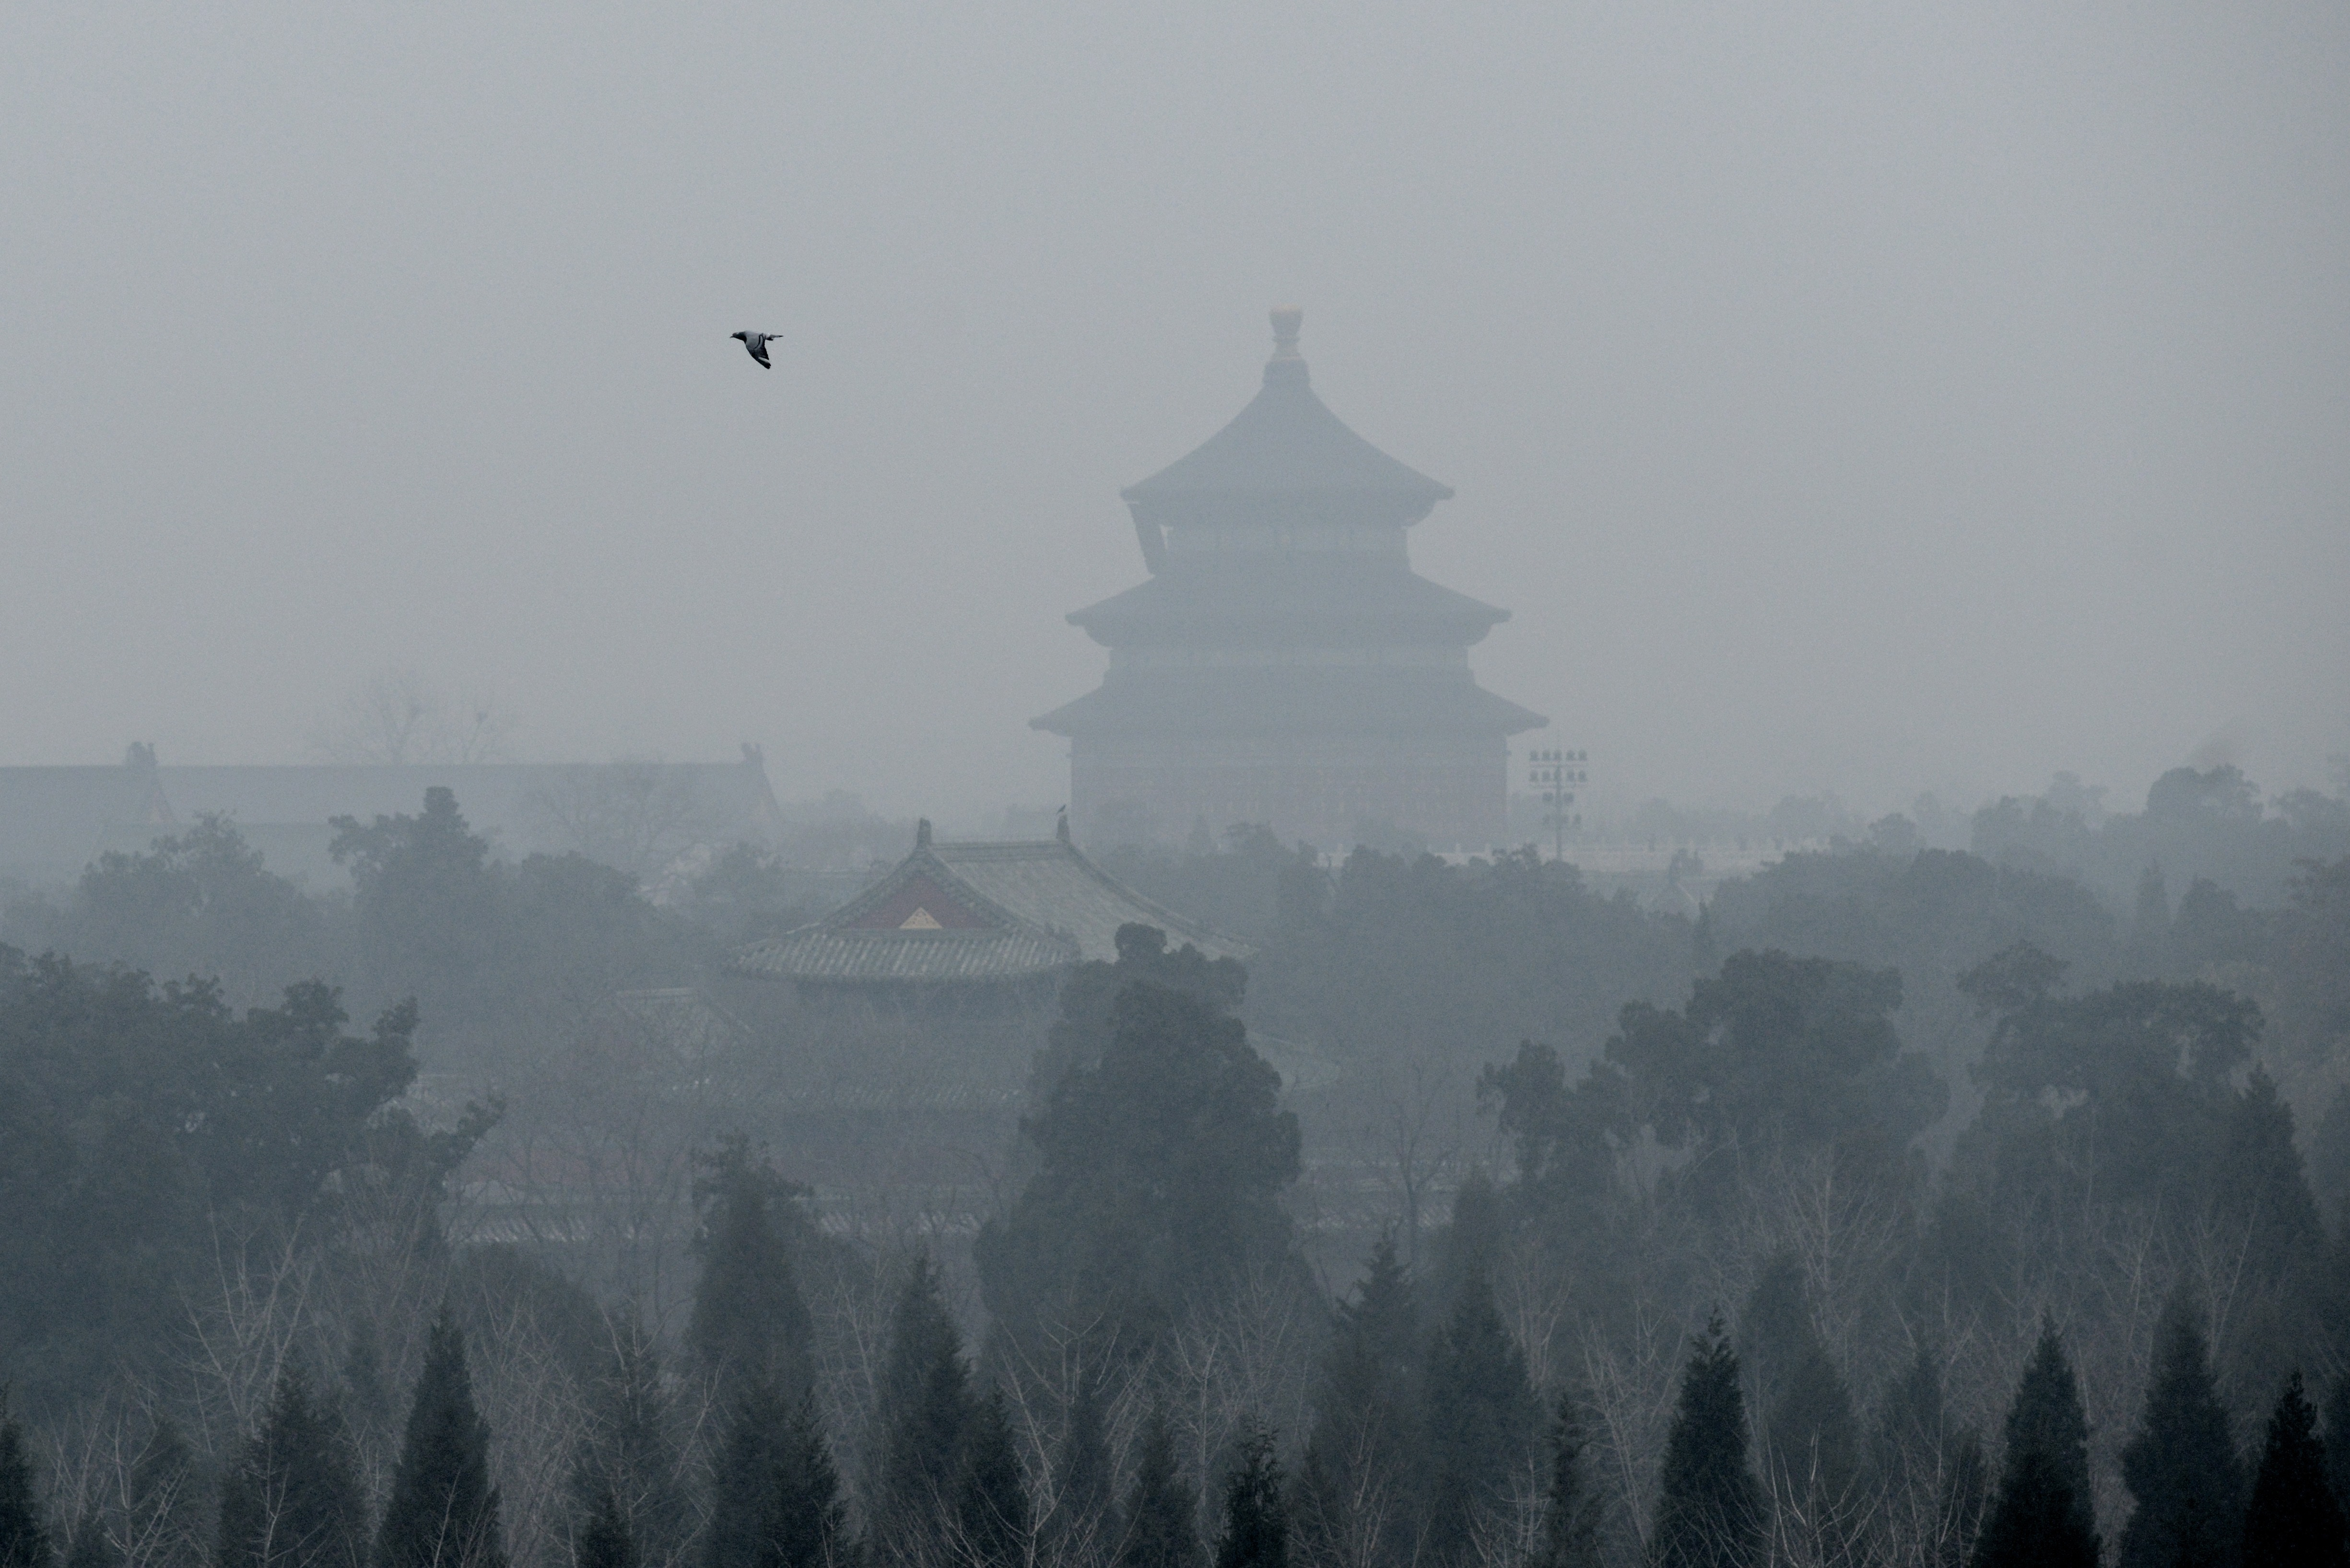 A bird flies over the grounds of the Temple of Heaven amid heavy air pollution in Beijing on December 8, 2015. Half of Beijing's private cars were ordered off the streets on December 8 and many construction sites and schools were closed under the Chinese capital's first-ever red alert for pollution. AFP PHOTO / WANG ZHAO / AFP / WANG ZHAO (Photo credit should read WANG ZHAO/AFP/Getty Images)